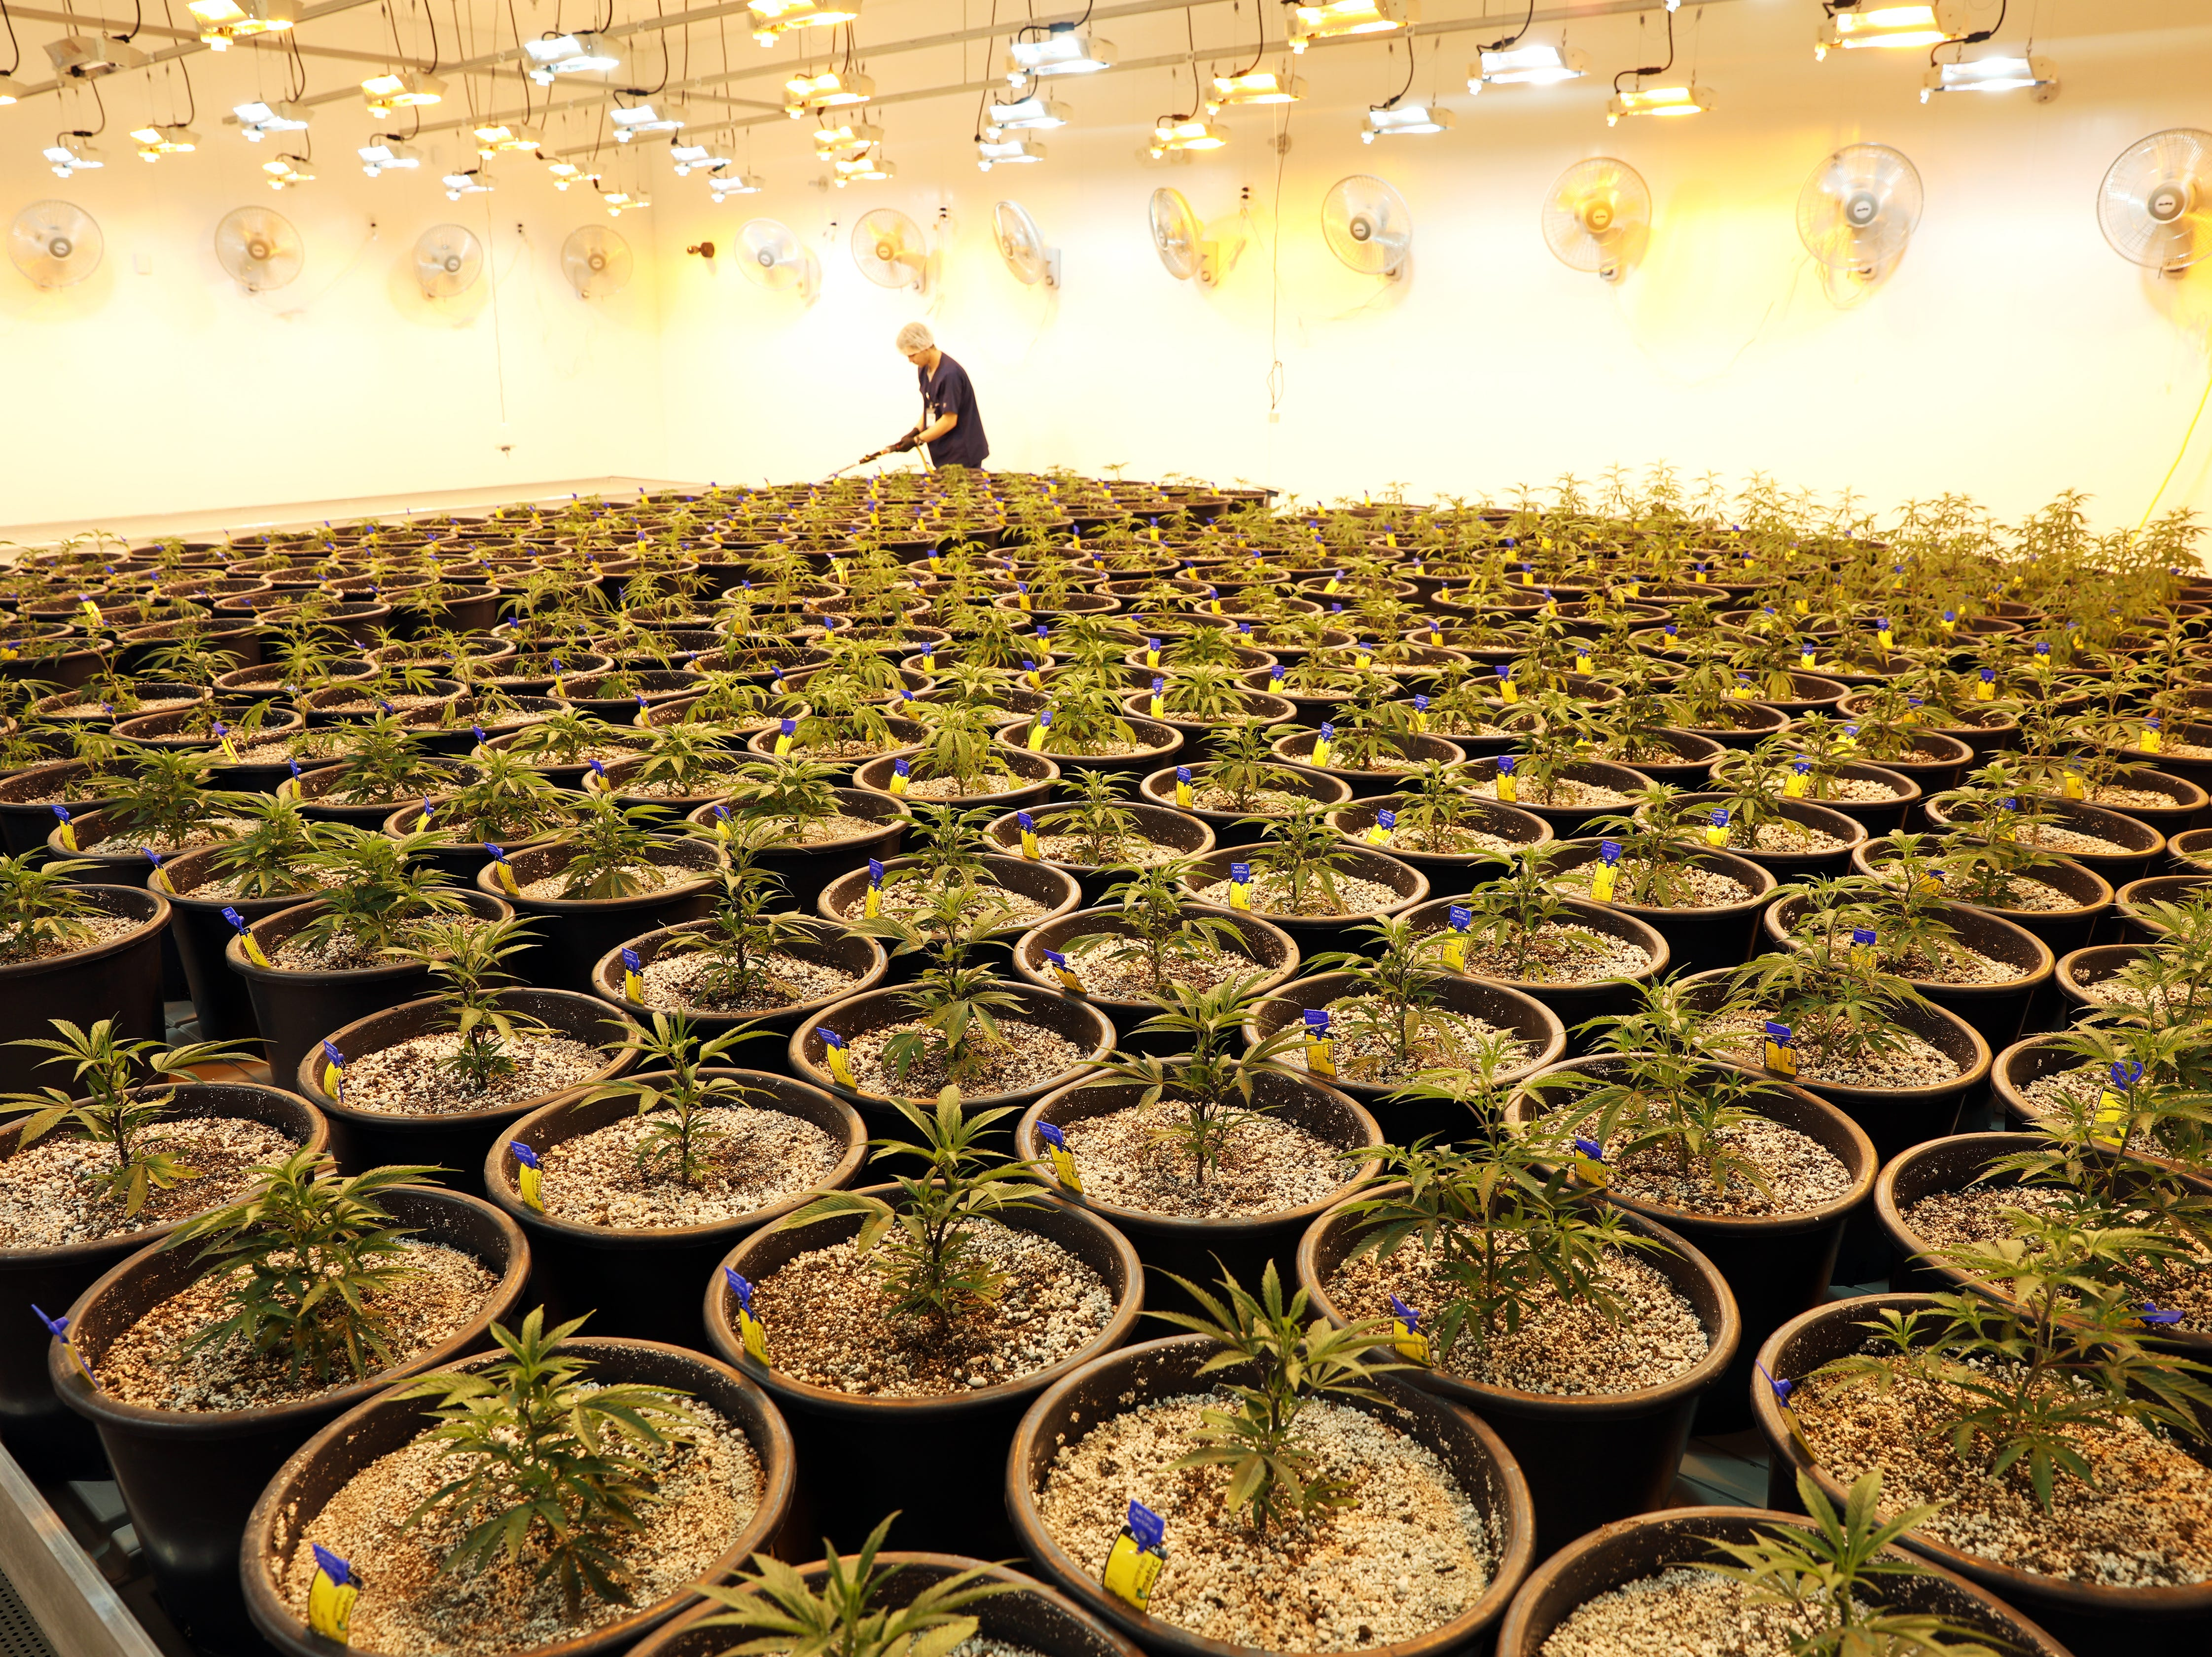 A worker waters young marijuana plants at Grow Ohio's facility near East Fultonham. The plants are grown under mixed lighting sources at this age, to get them ready for the grow lights used when they are older.